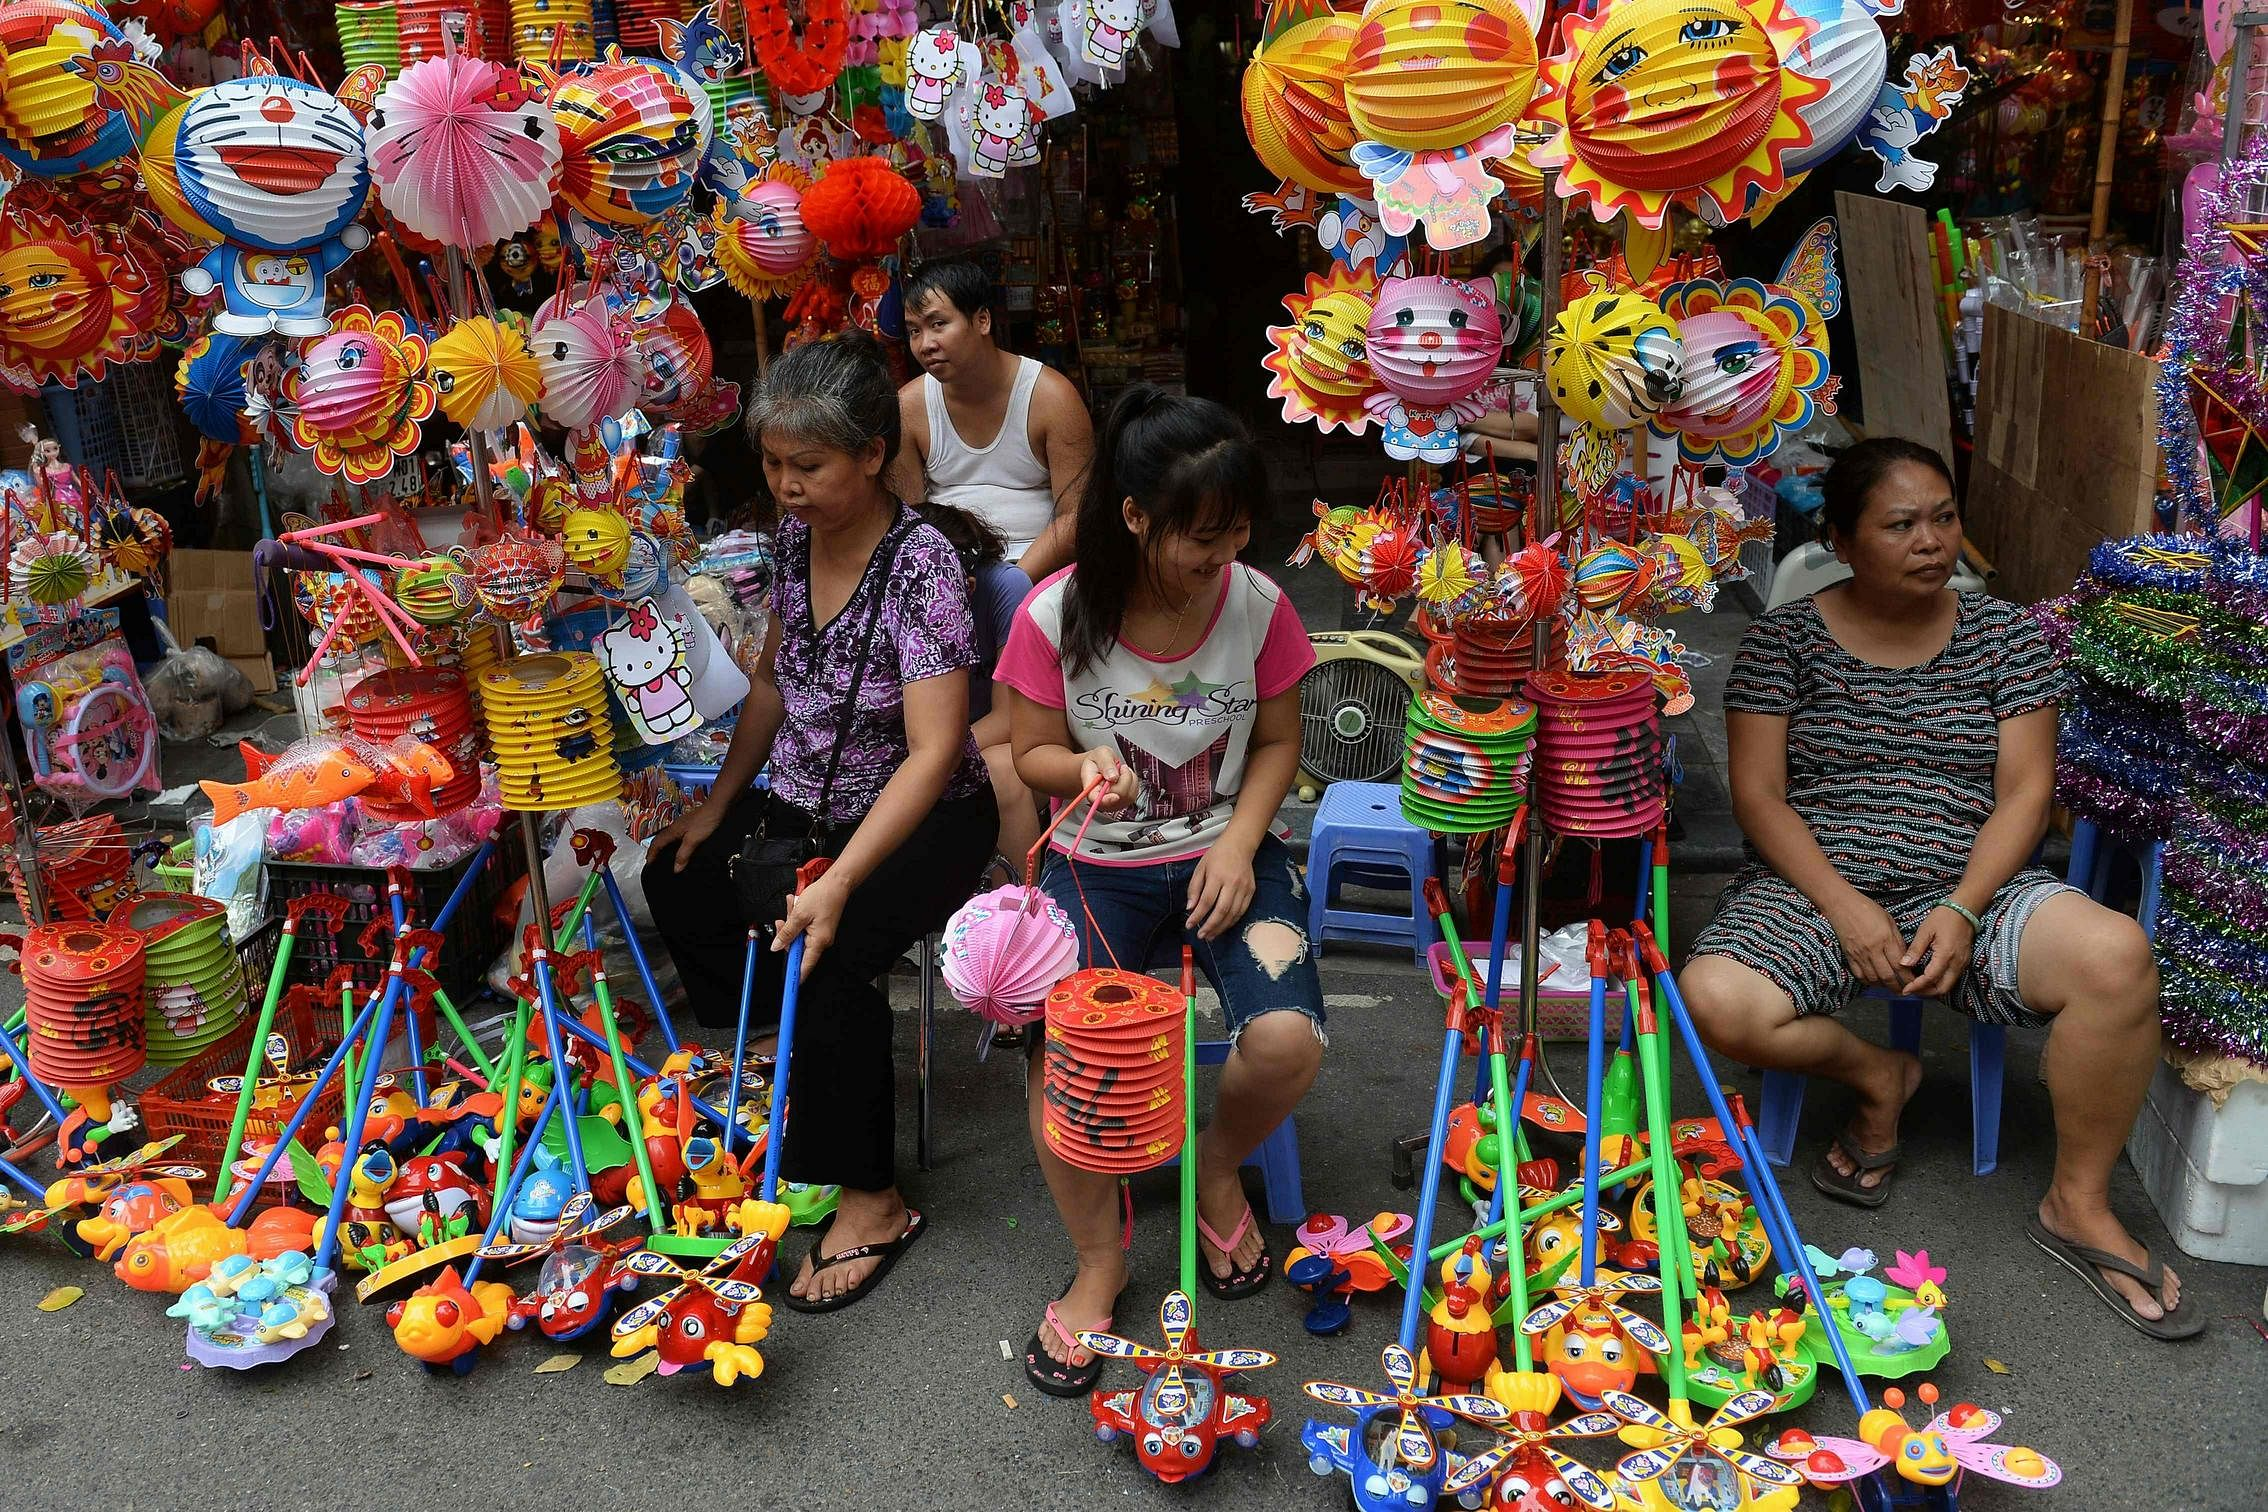 Full moon fun: How Mid-Autumn Festival is celebrated in